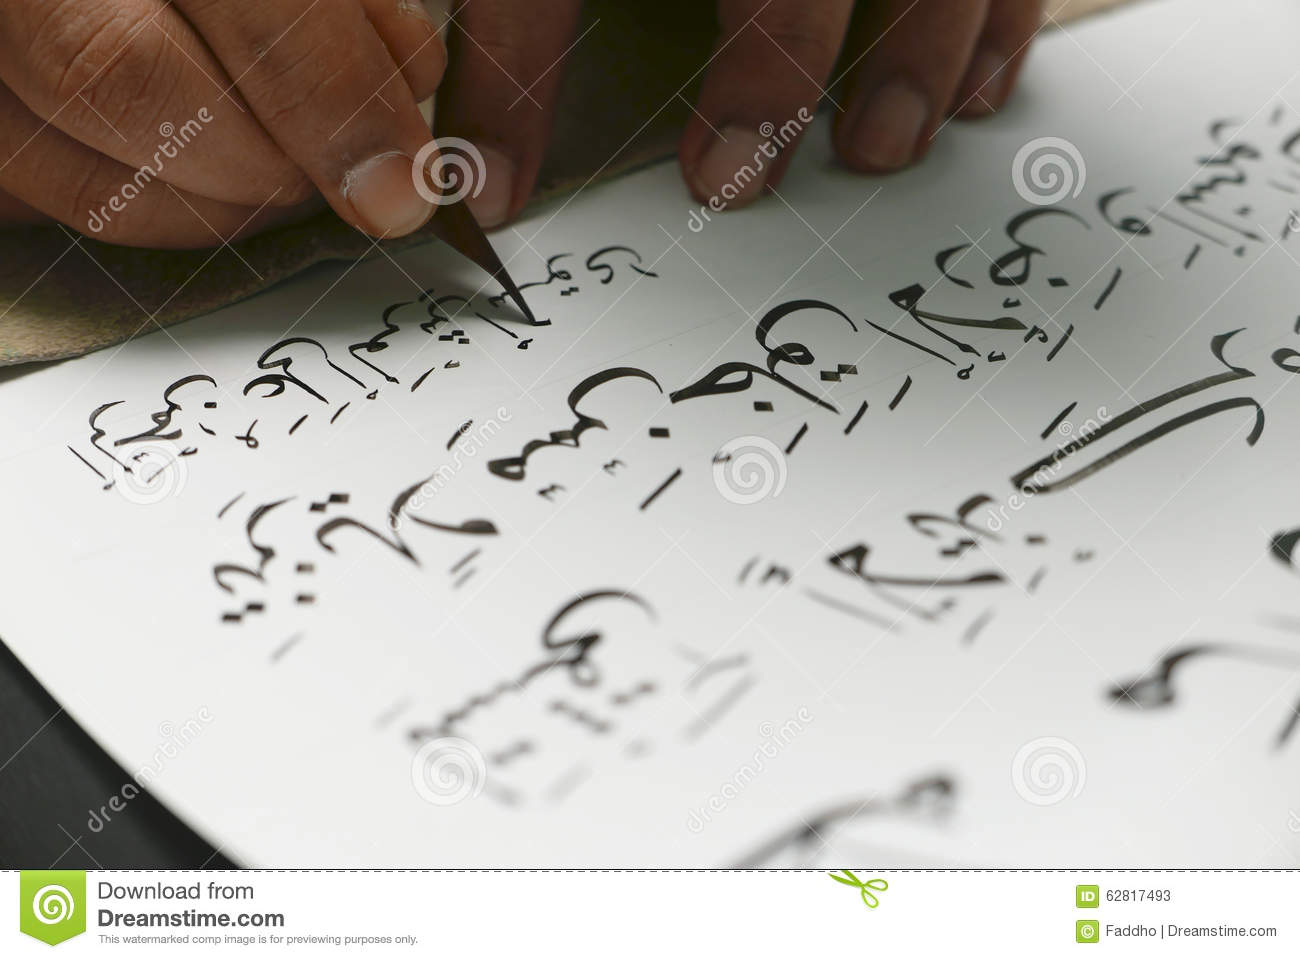 Quranic Calligraphy Transcription On Paper  Islamic Sacred